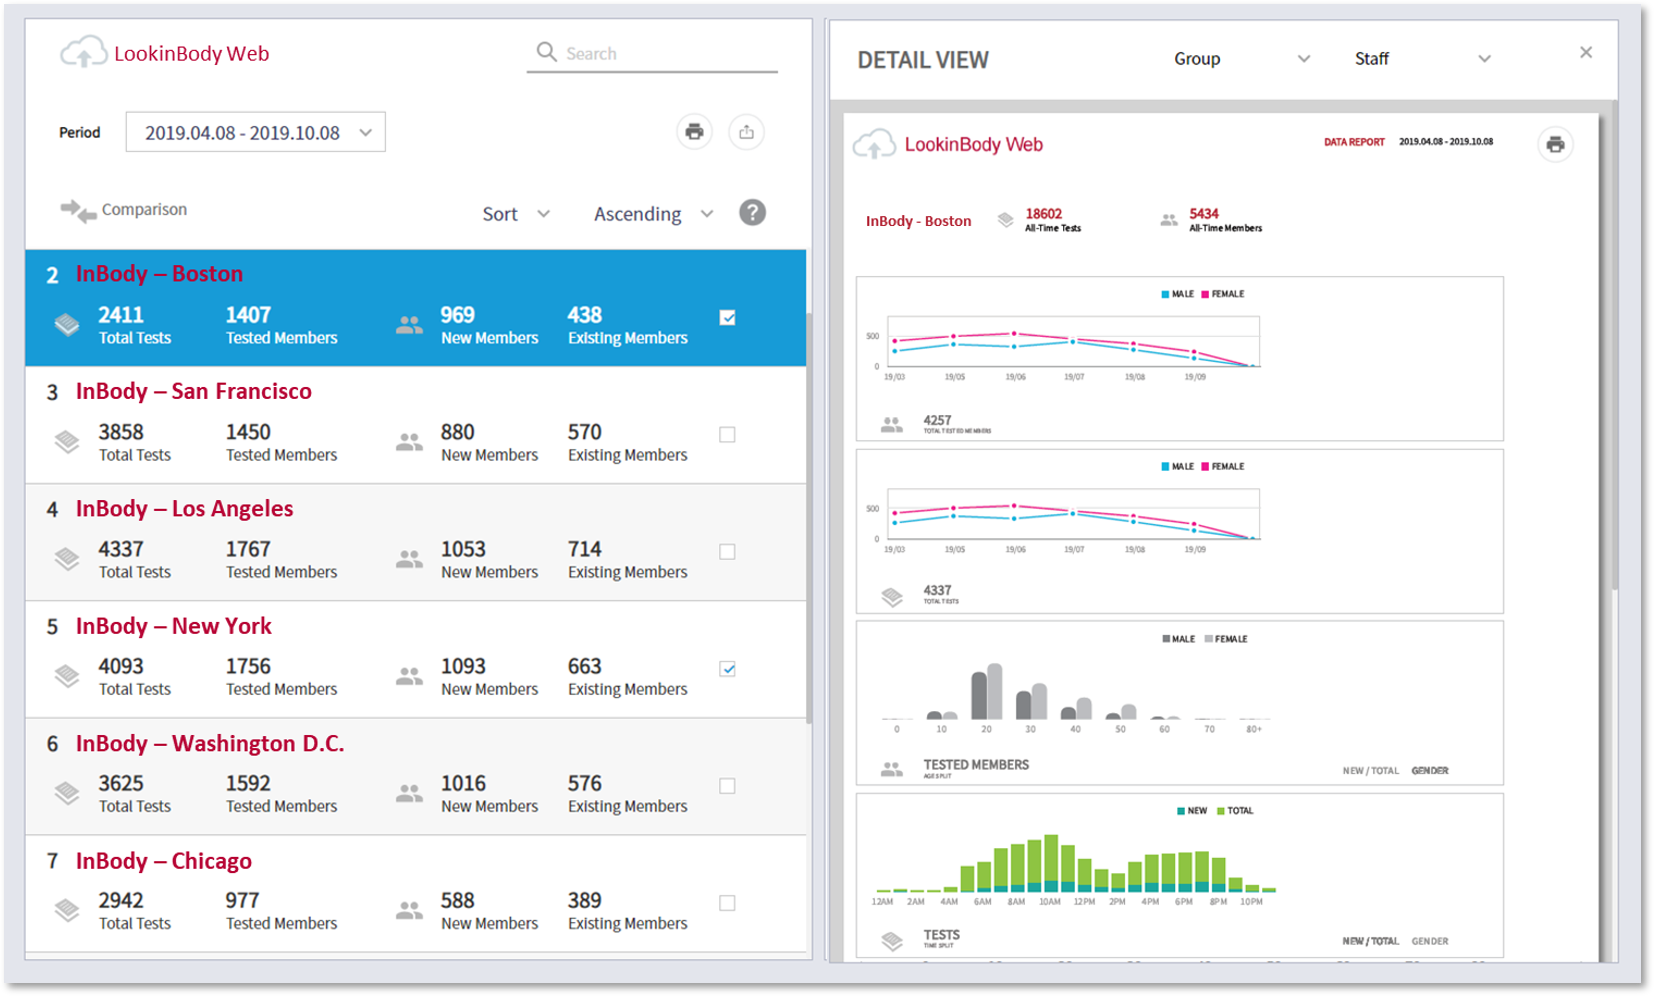 LookinBody Web Dashboard Multilocation Report